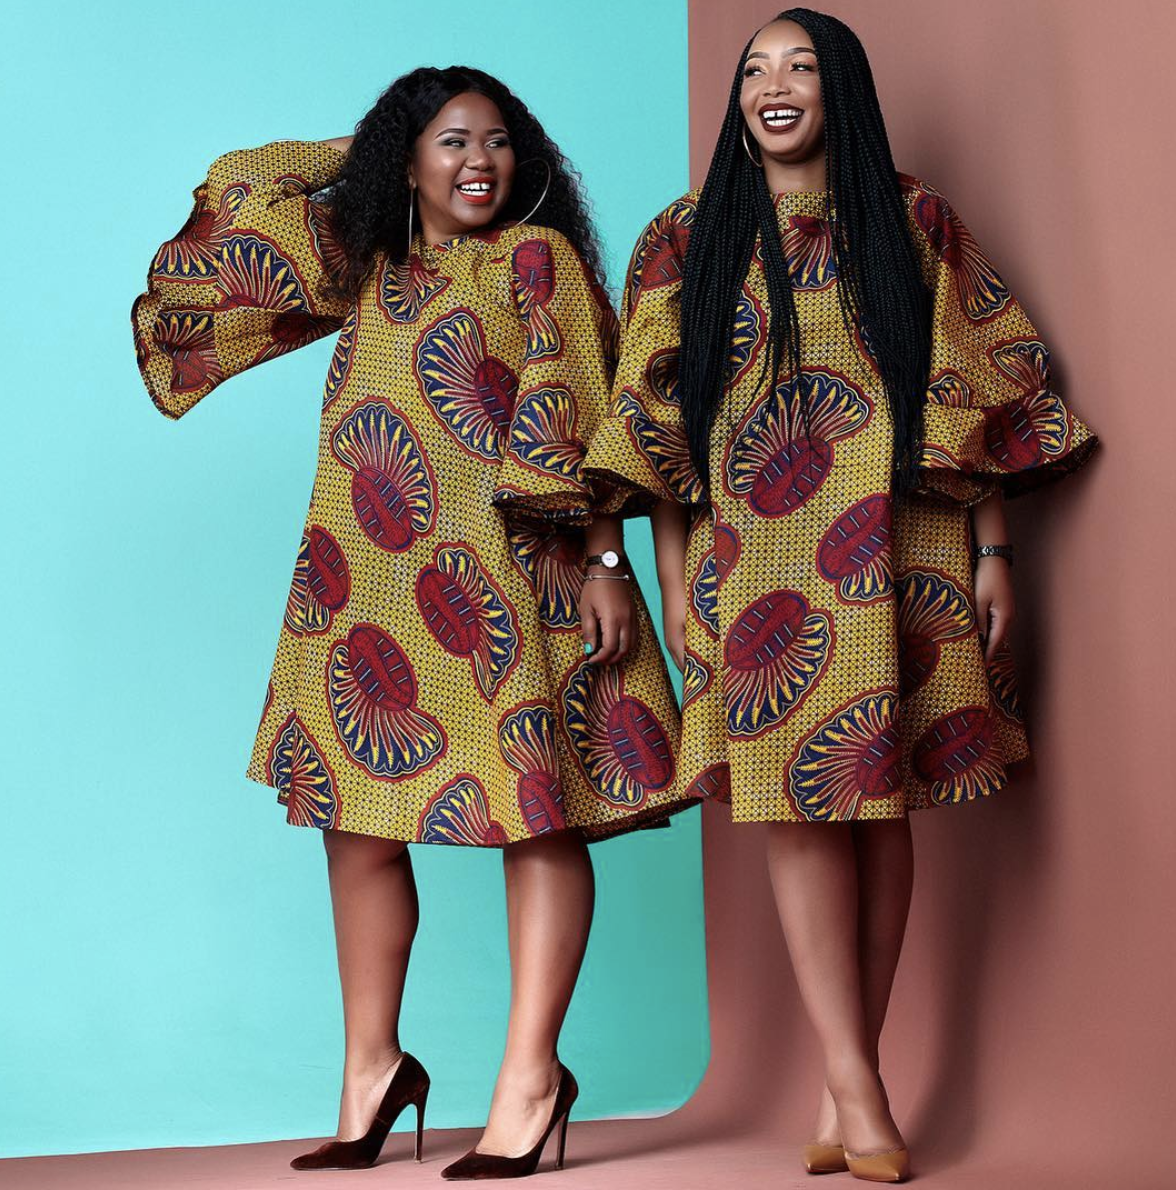 BEST OF AFRICA: 5 Minutes With Nqobile Tshalata Of Dainty